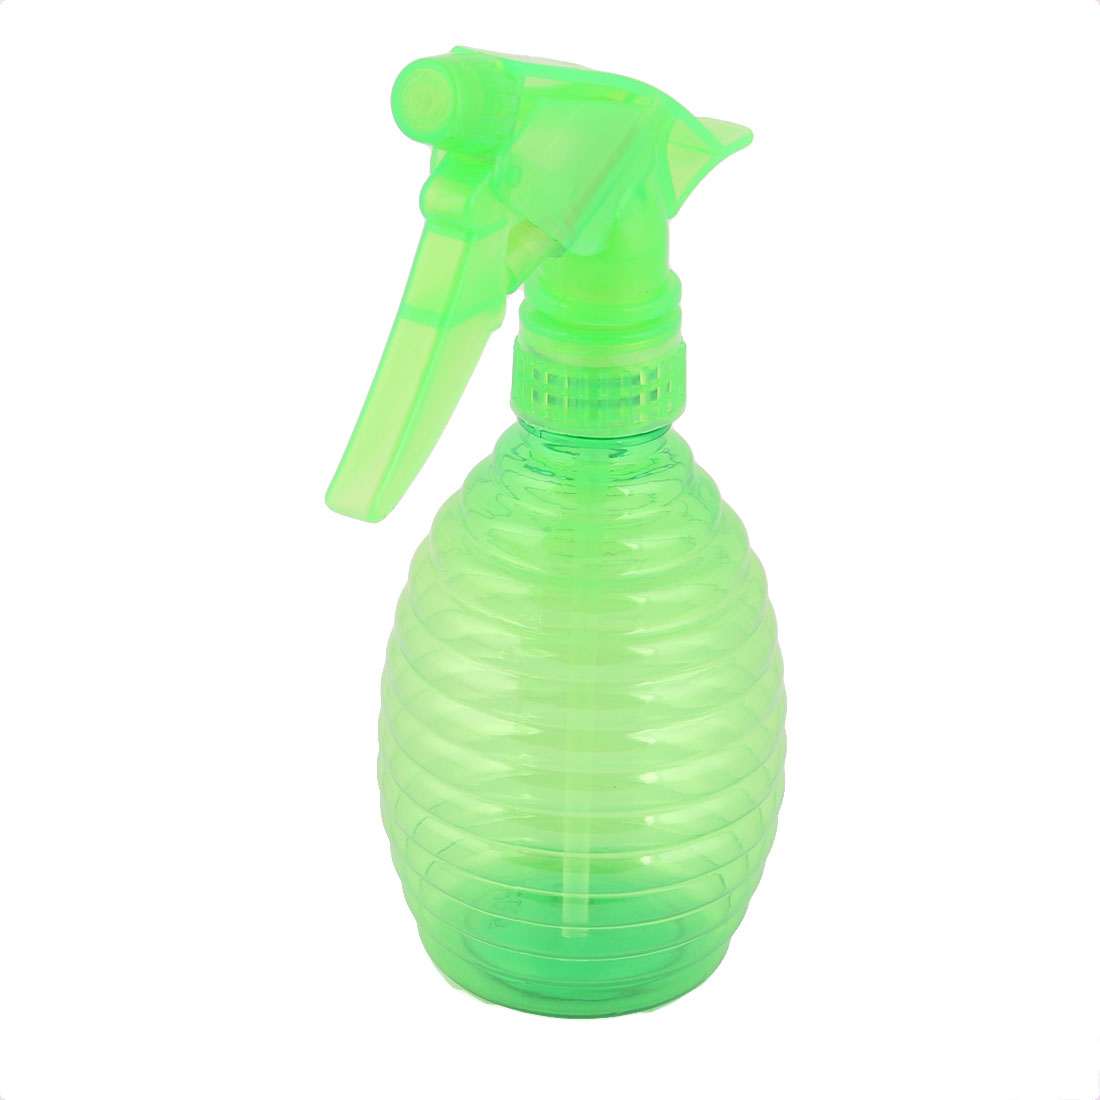 Salon Plants Plastic Hairdressing Trigger Liquid Water Sprayer Spray Bottle Green 350ml